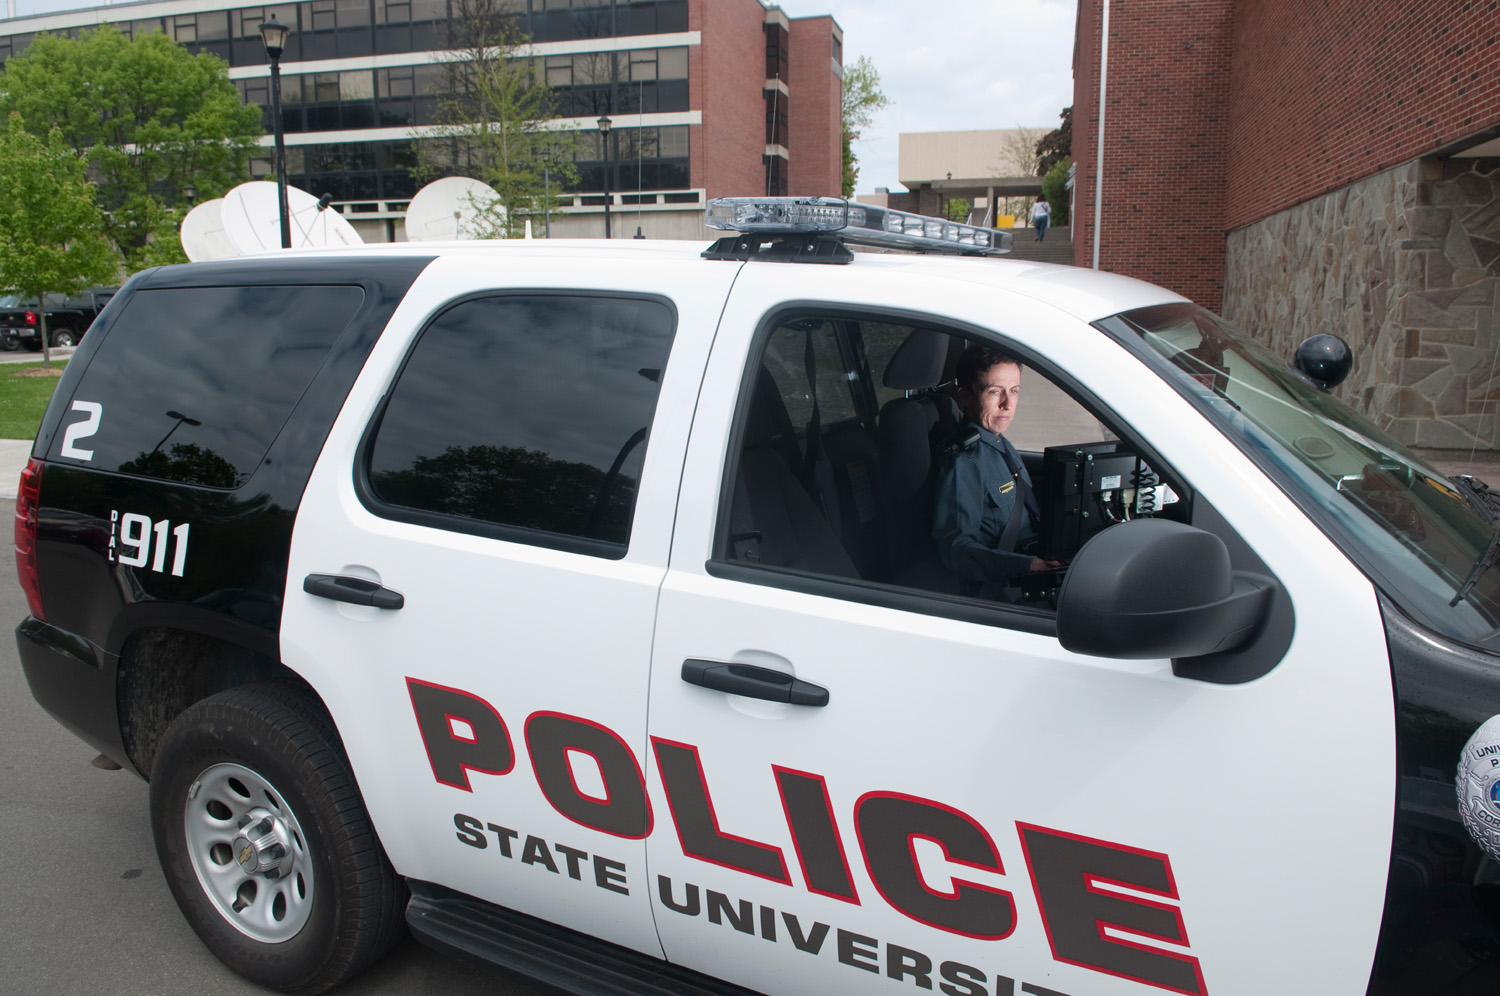 Picture of a University Police Vehicle